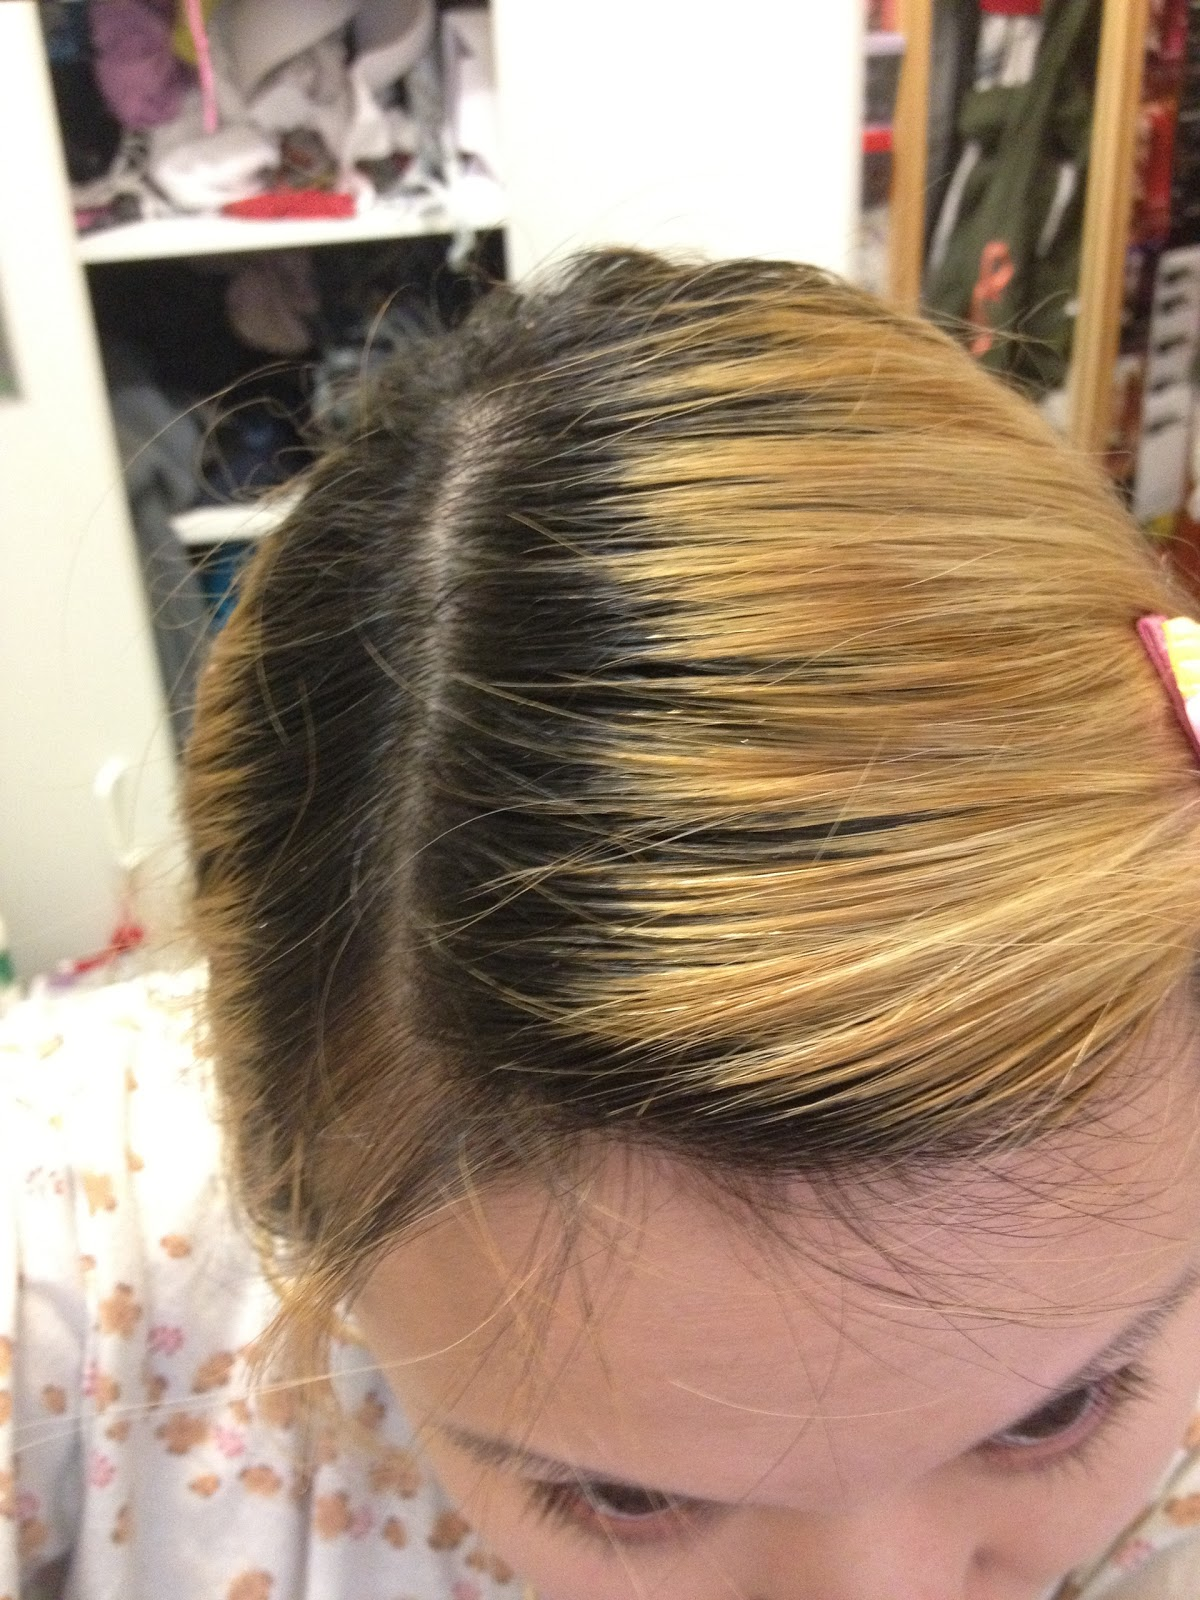 Loreal Excellence Hicolor For Dark Hair After Dying Hair Imagejpg